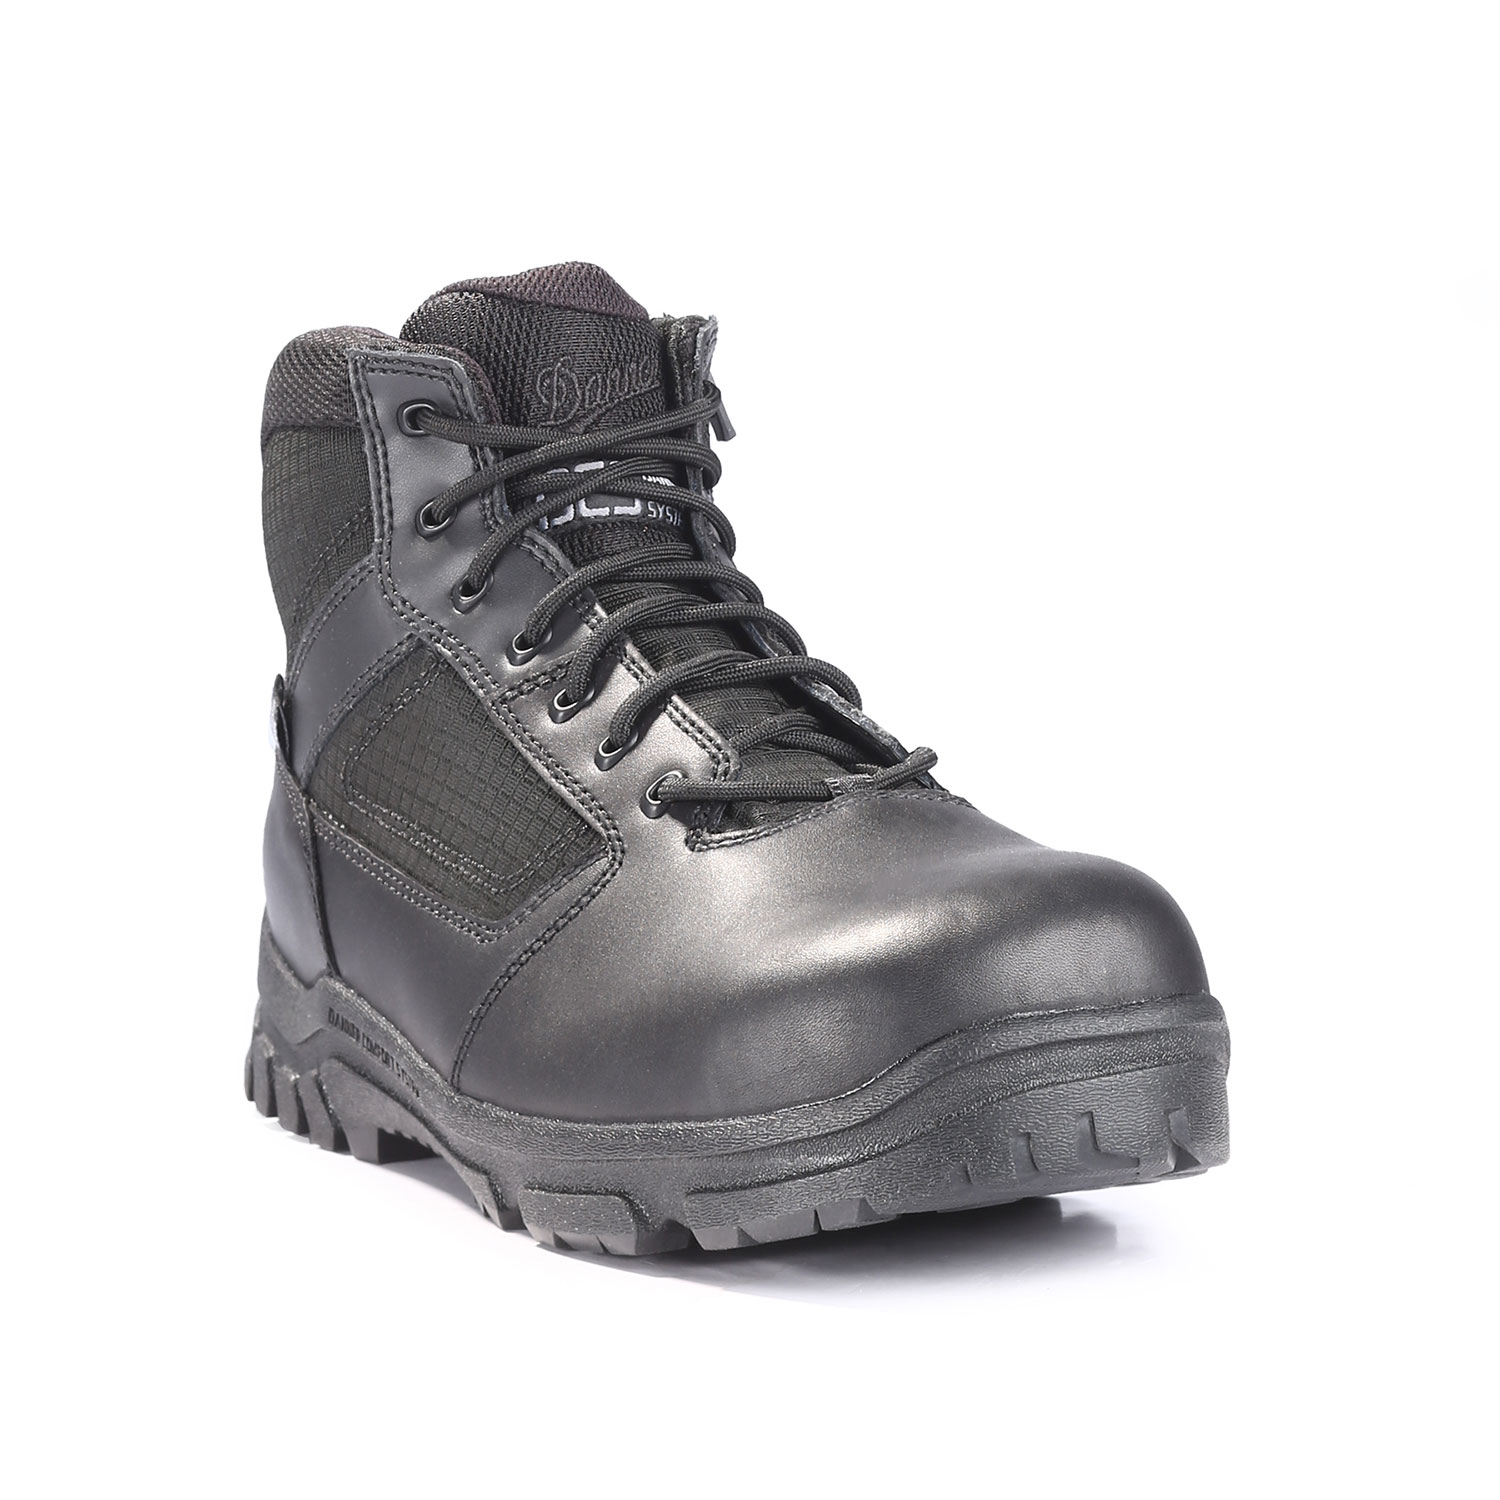 "Danner Lookout 5.5"" Composite Toe Side Zip Boot"